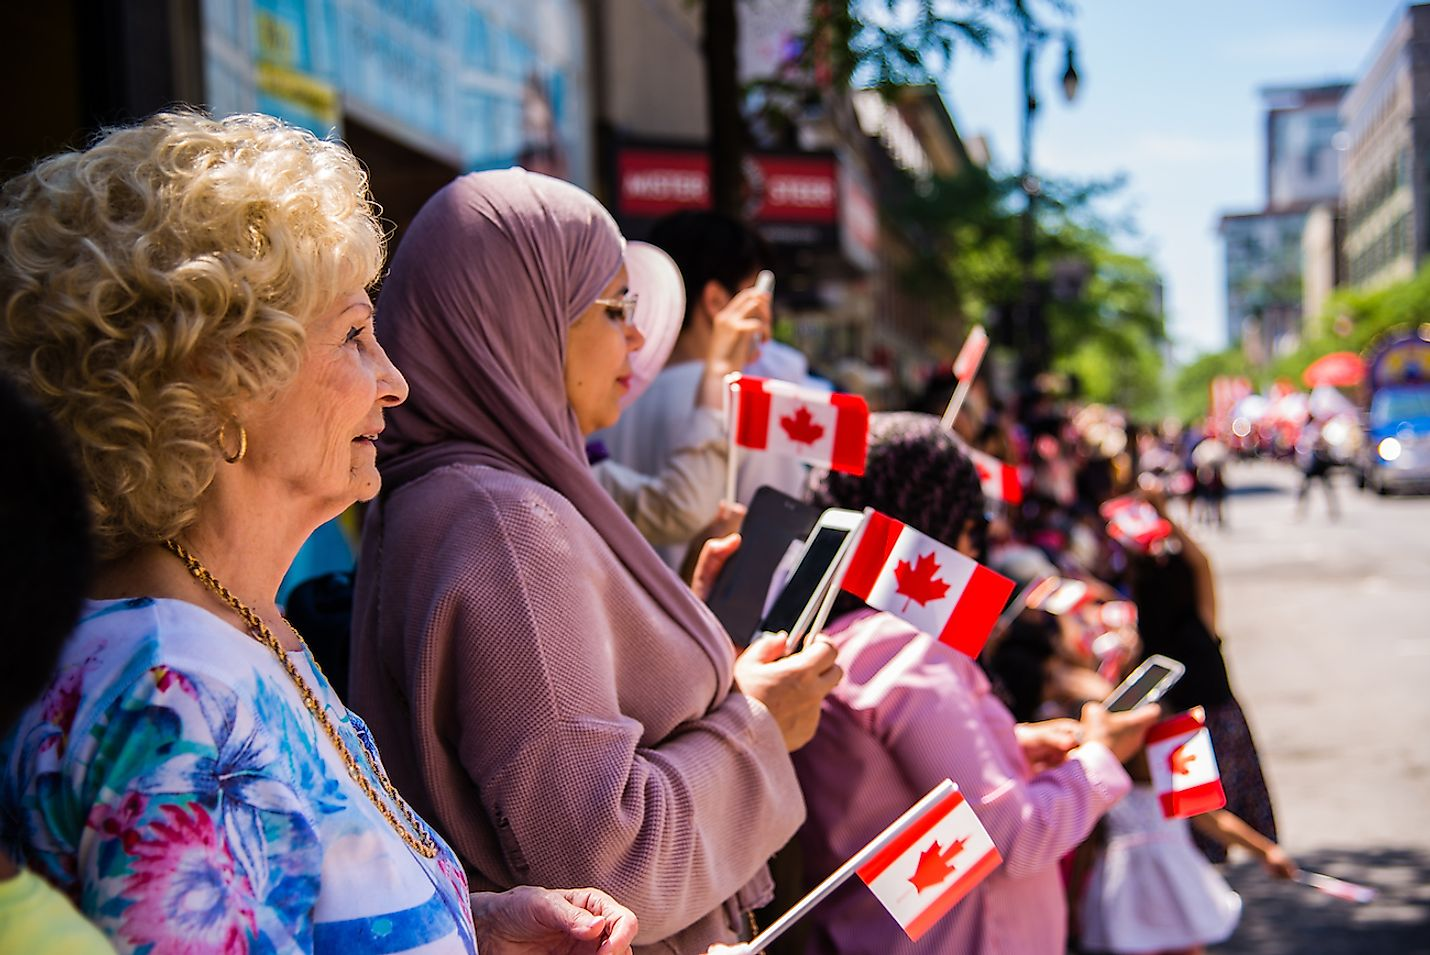 Canadians watching the Canada Day Parade. Image credit:  Vincent JIANG/Shutterstock.com